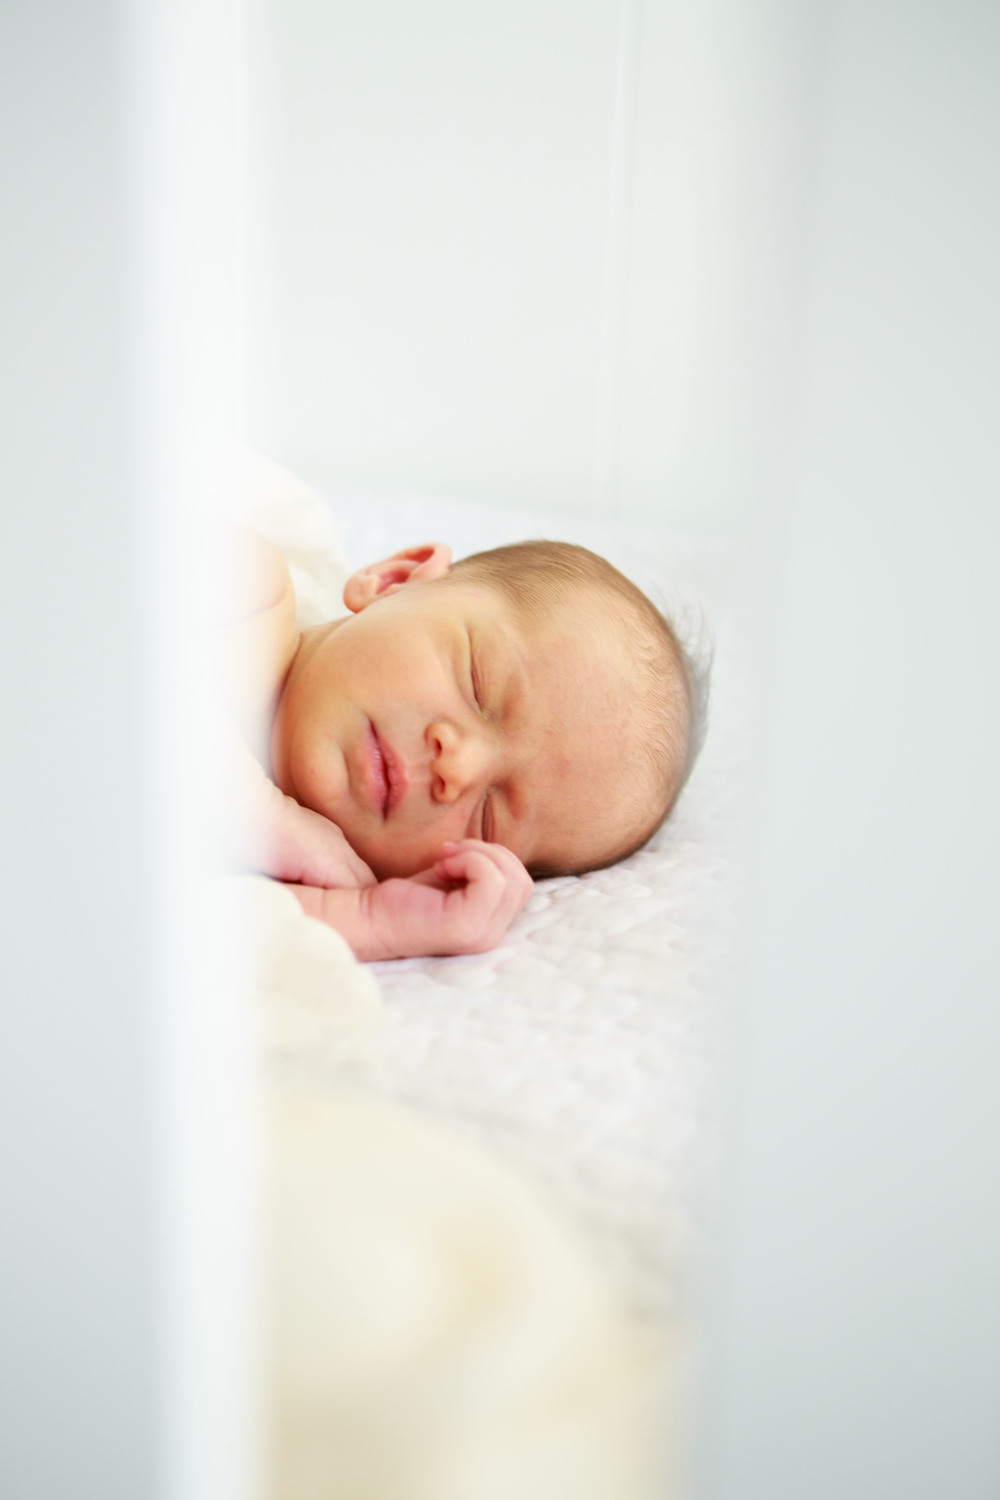 Southern_Pines_Newborn_Photographer_Tiffany_Abruzzo_Photography_51.jpg